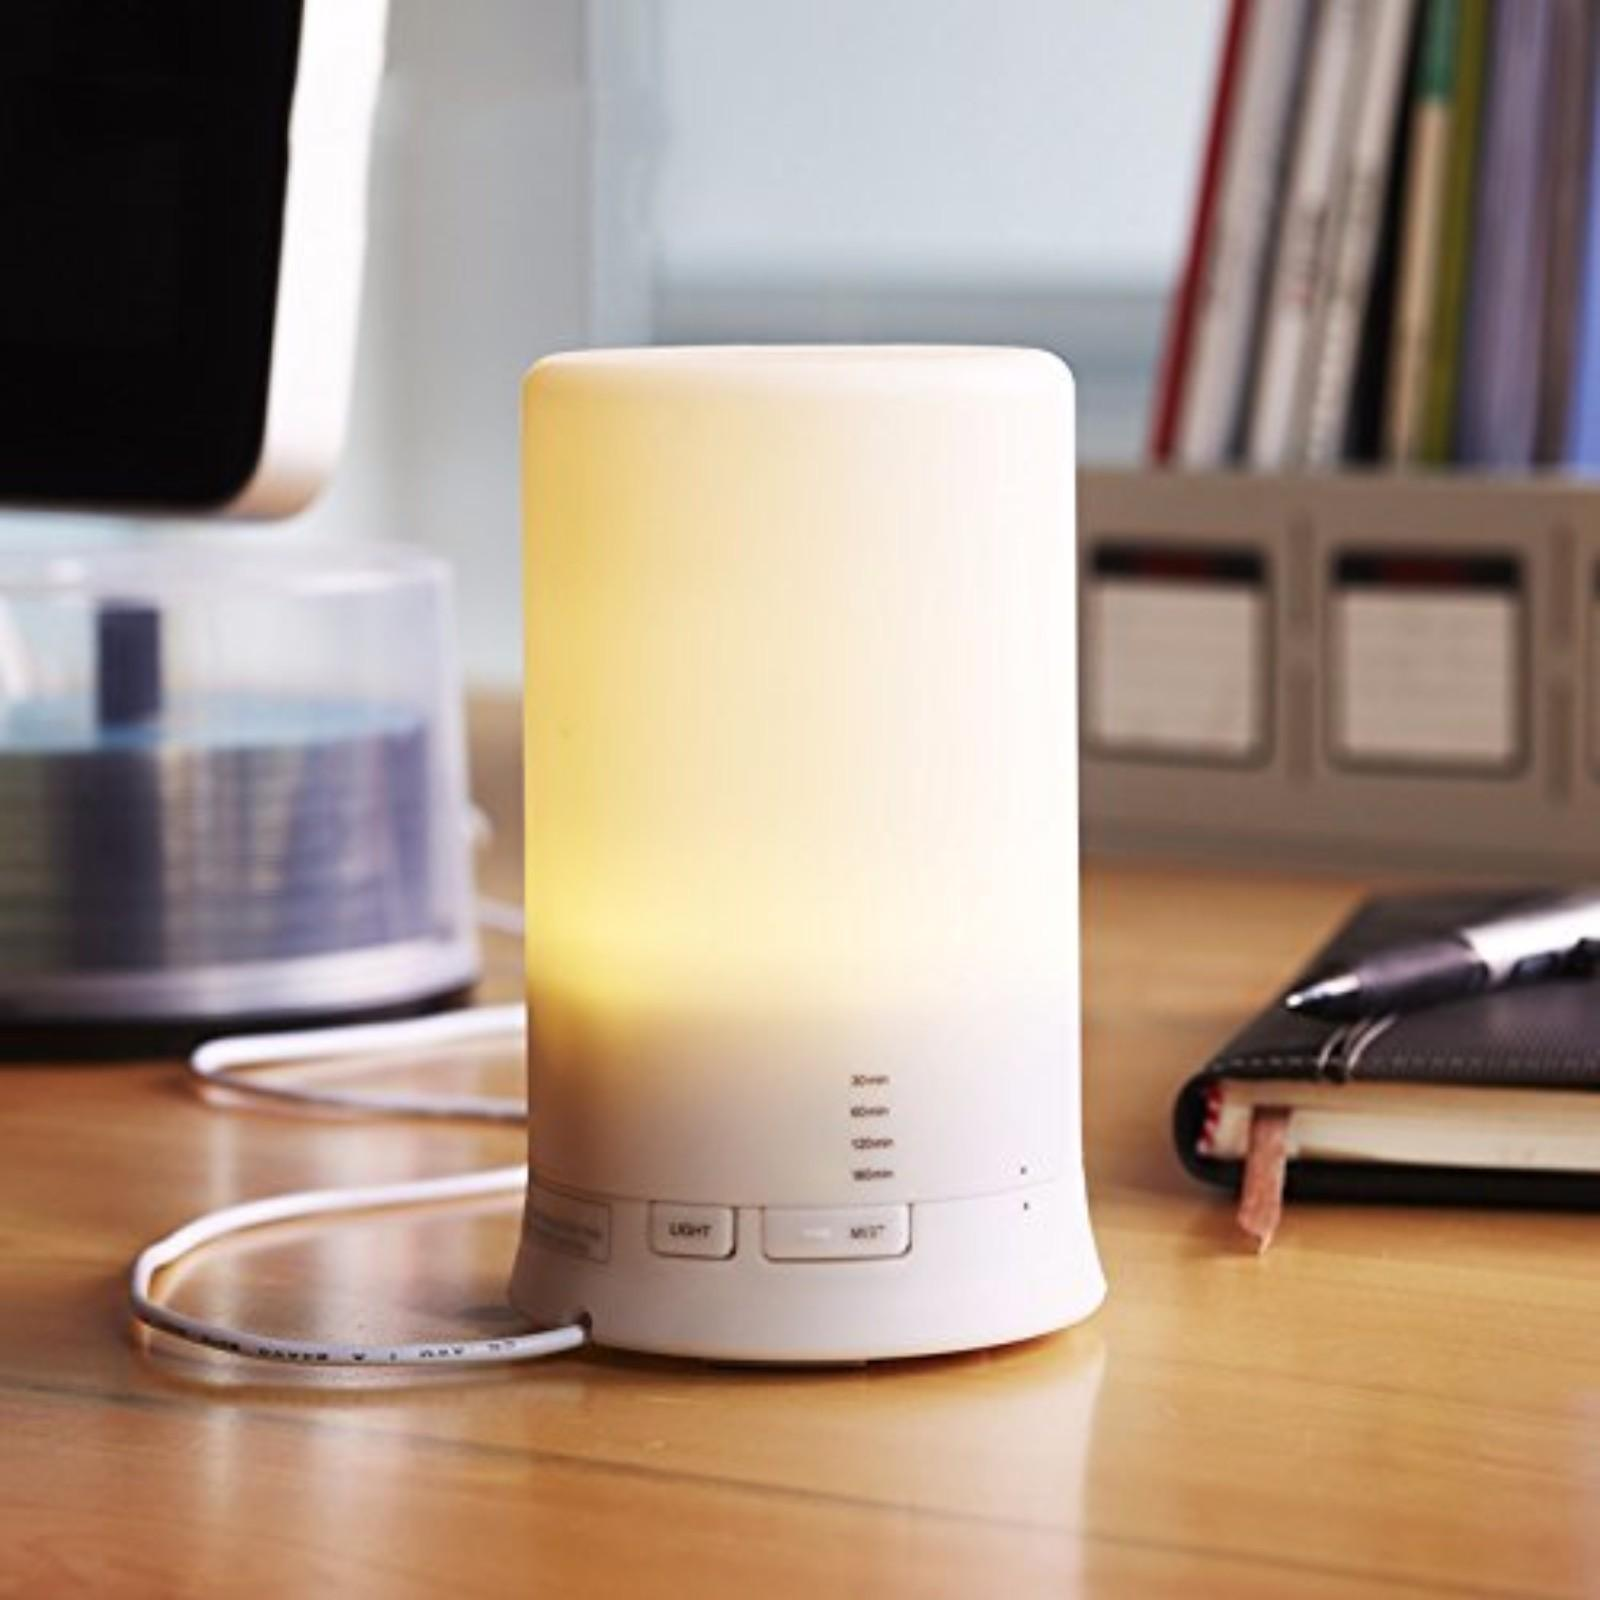 Biofinest A2 (100Ml) Muji Ultrasonic Aroma Diffuser/ Air Humidifier/ Purifier